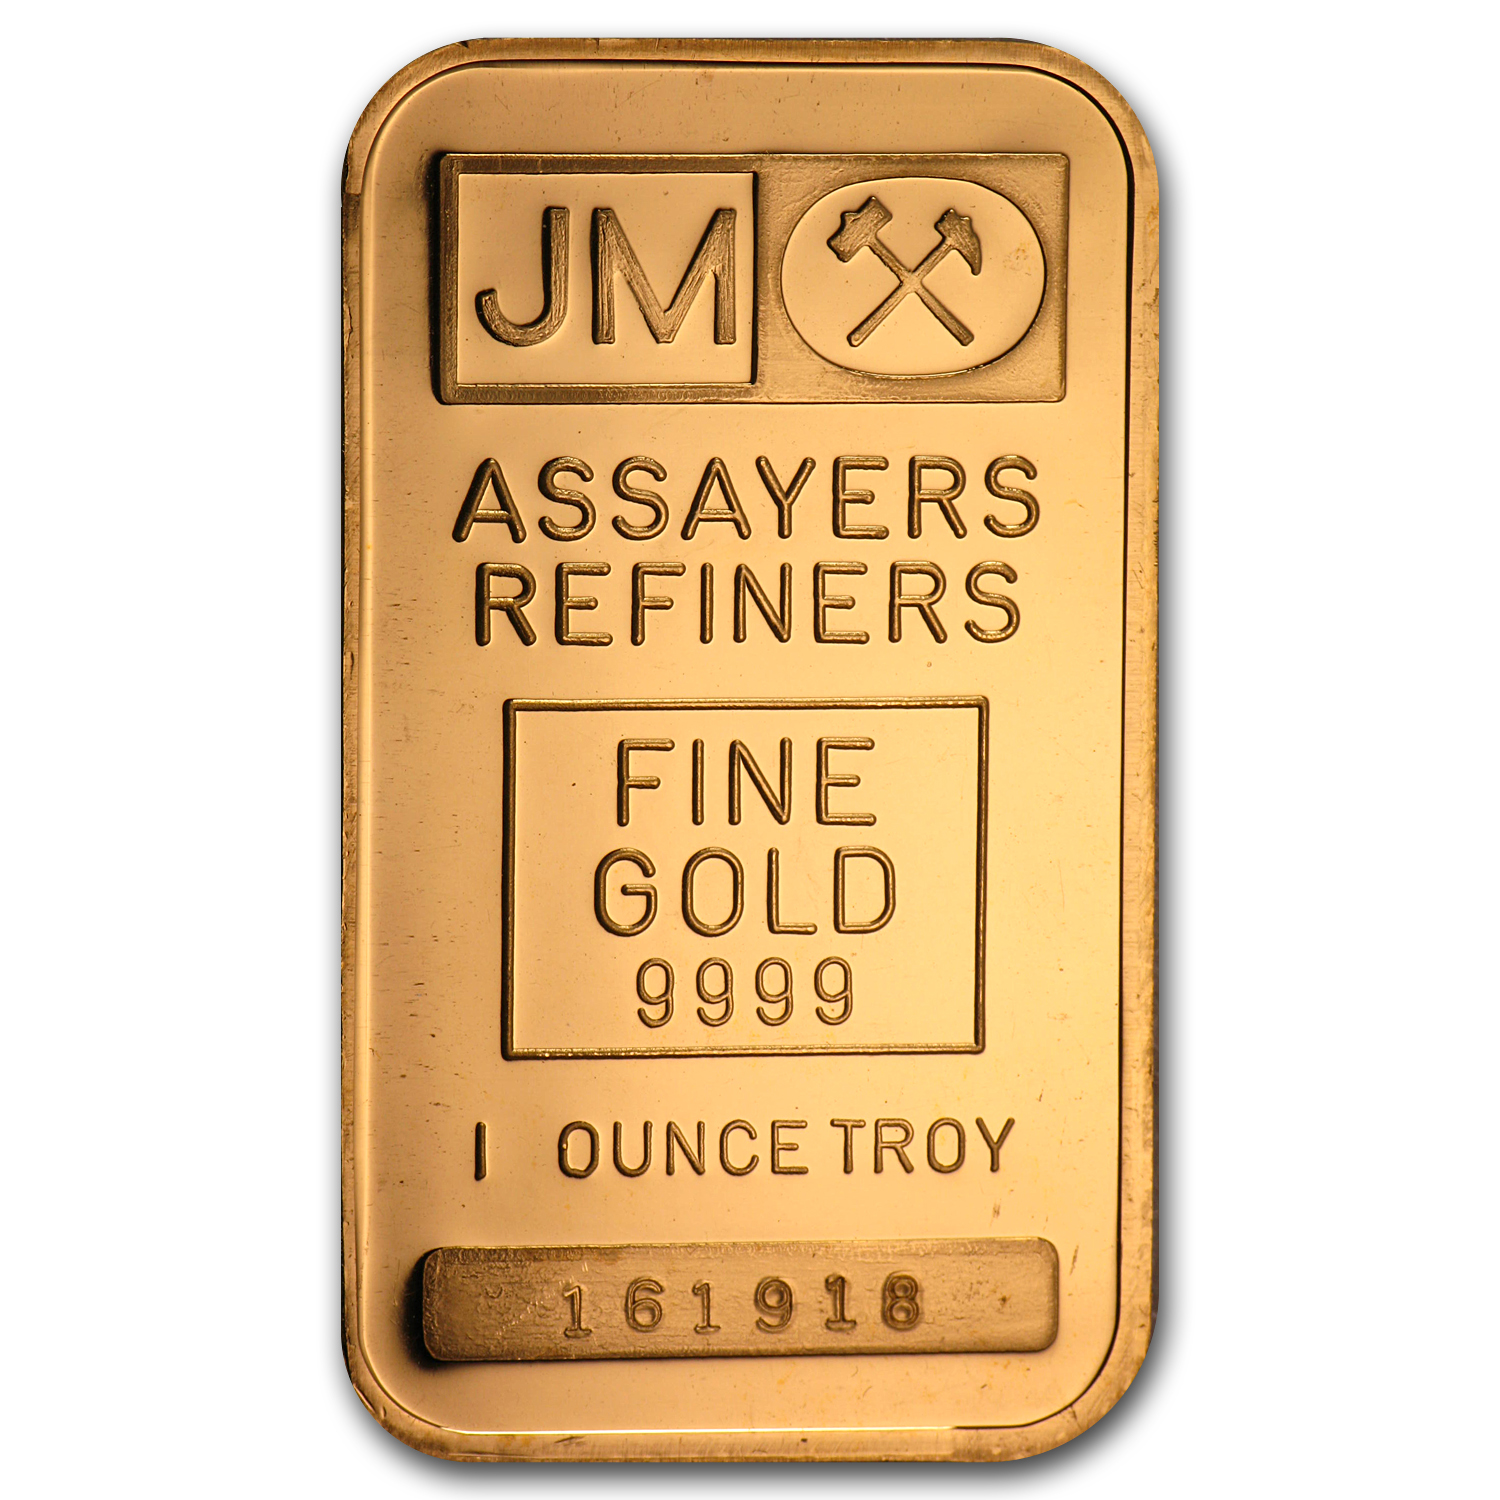 1 oz Gold Bars - Johnson Matthey (Plain Back, No Assay)